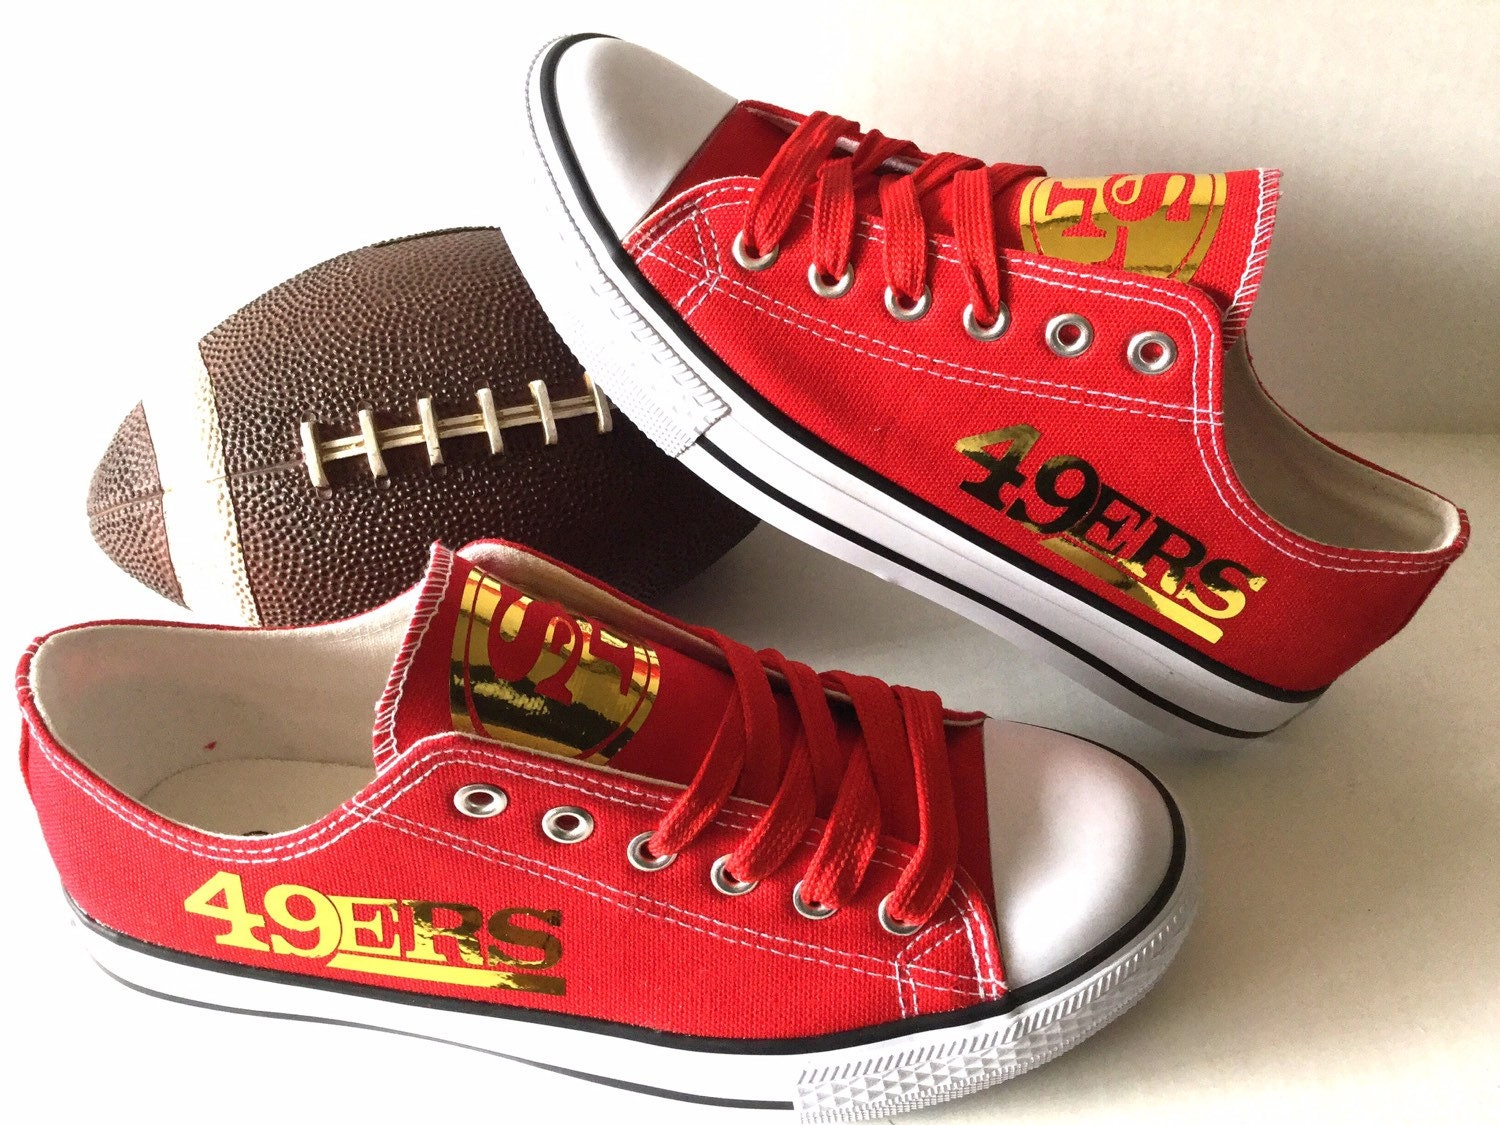 san francisco 49ers gold s athletic shoes by